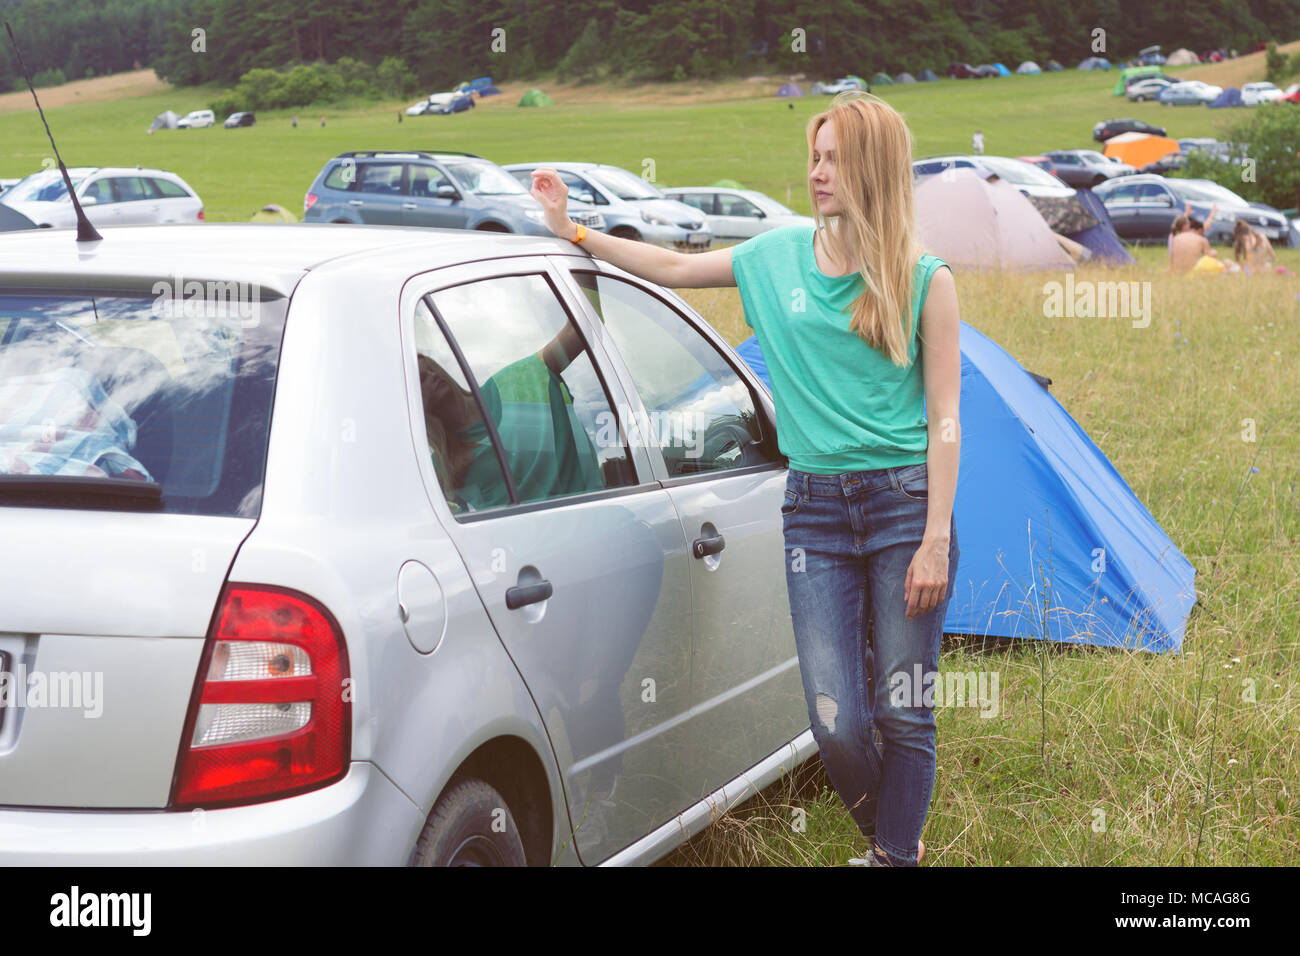 young woman leaning against car in camping area on open-air festival - Stock Image